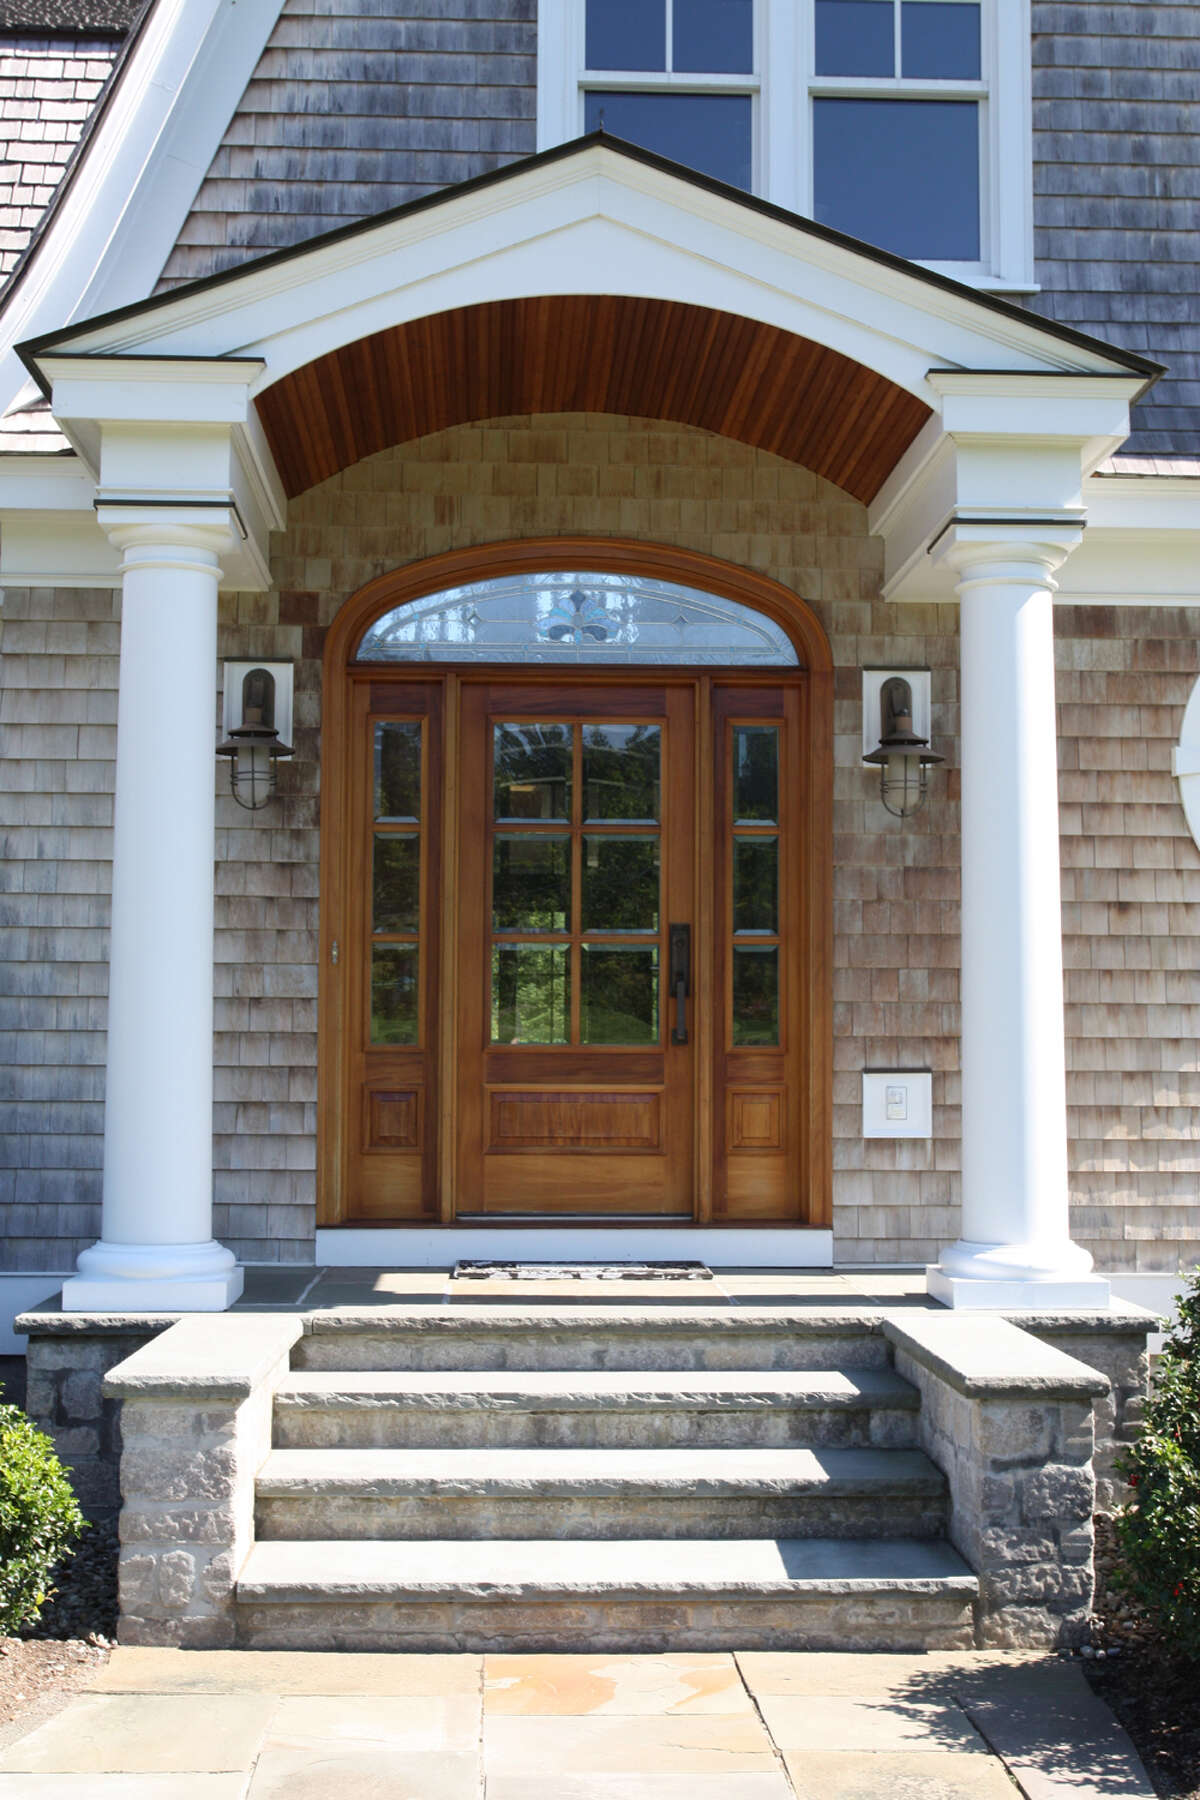 House of the Week: 341 Vly Rd., Niskayuna   Realtor: Colleen Loonan at Richard G. Rosetti Real Estate   Discuss: Talk about this house